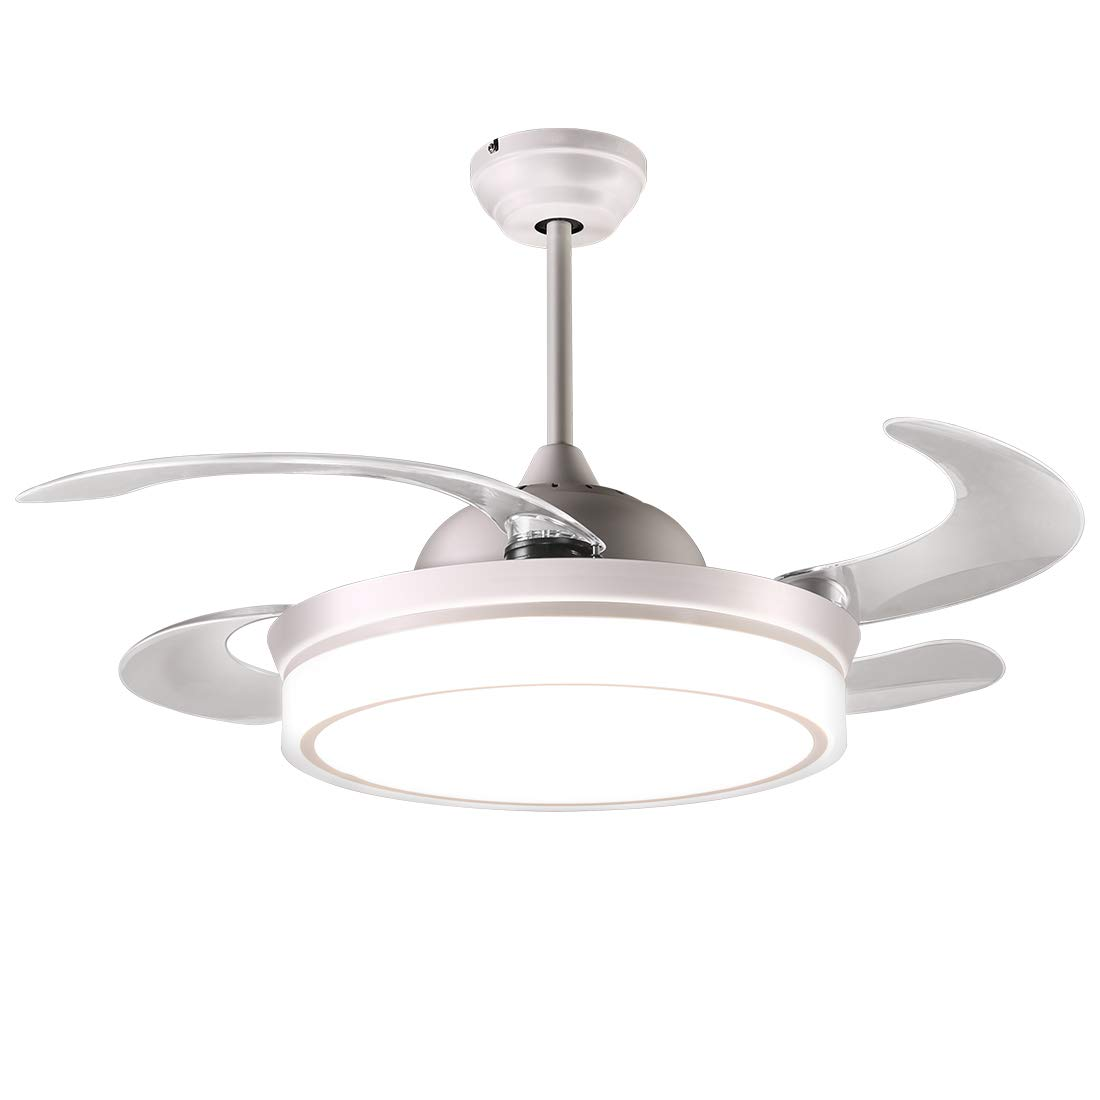 reiga 44-inch White Modern Ceiling Fan Retractable Blades with Dimmable LED Lights, Remote Control, 2 Down-rods